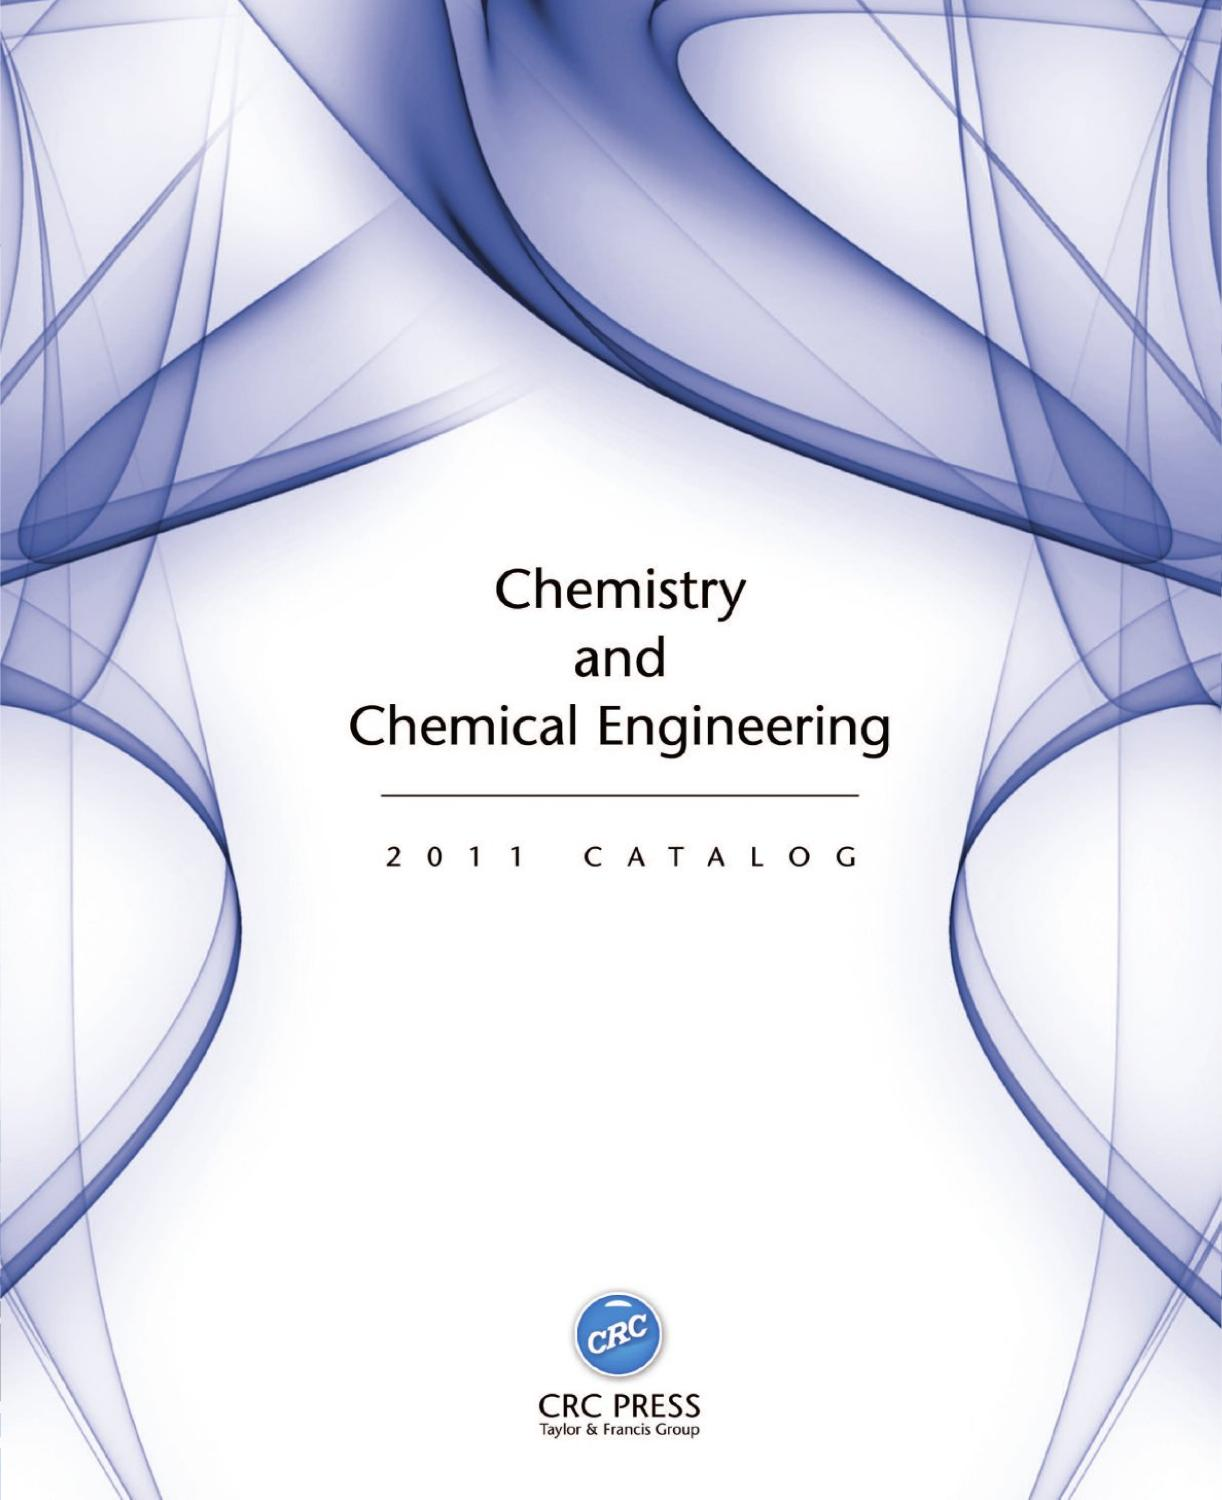 Chemistry and chemical engineering by crc press issuu fandeluxe Choice Image